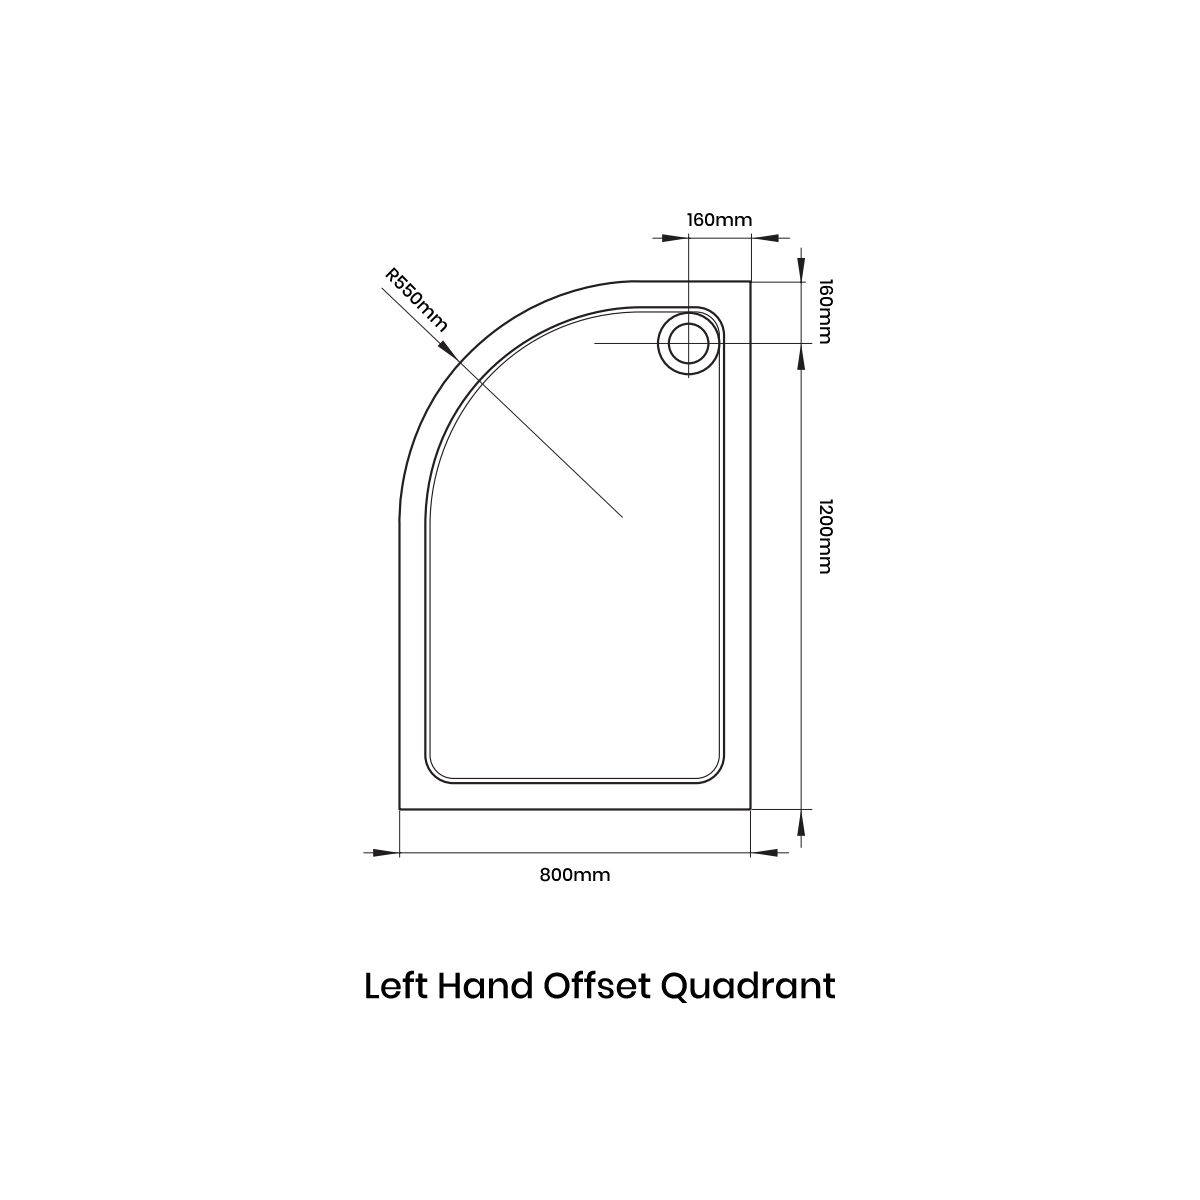 April Offset Quadrant Anti Slip Shower Tray 1200 x 800 Left Handed Line Drawing